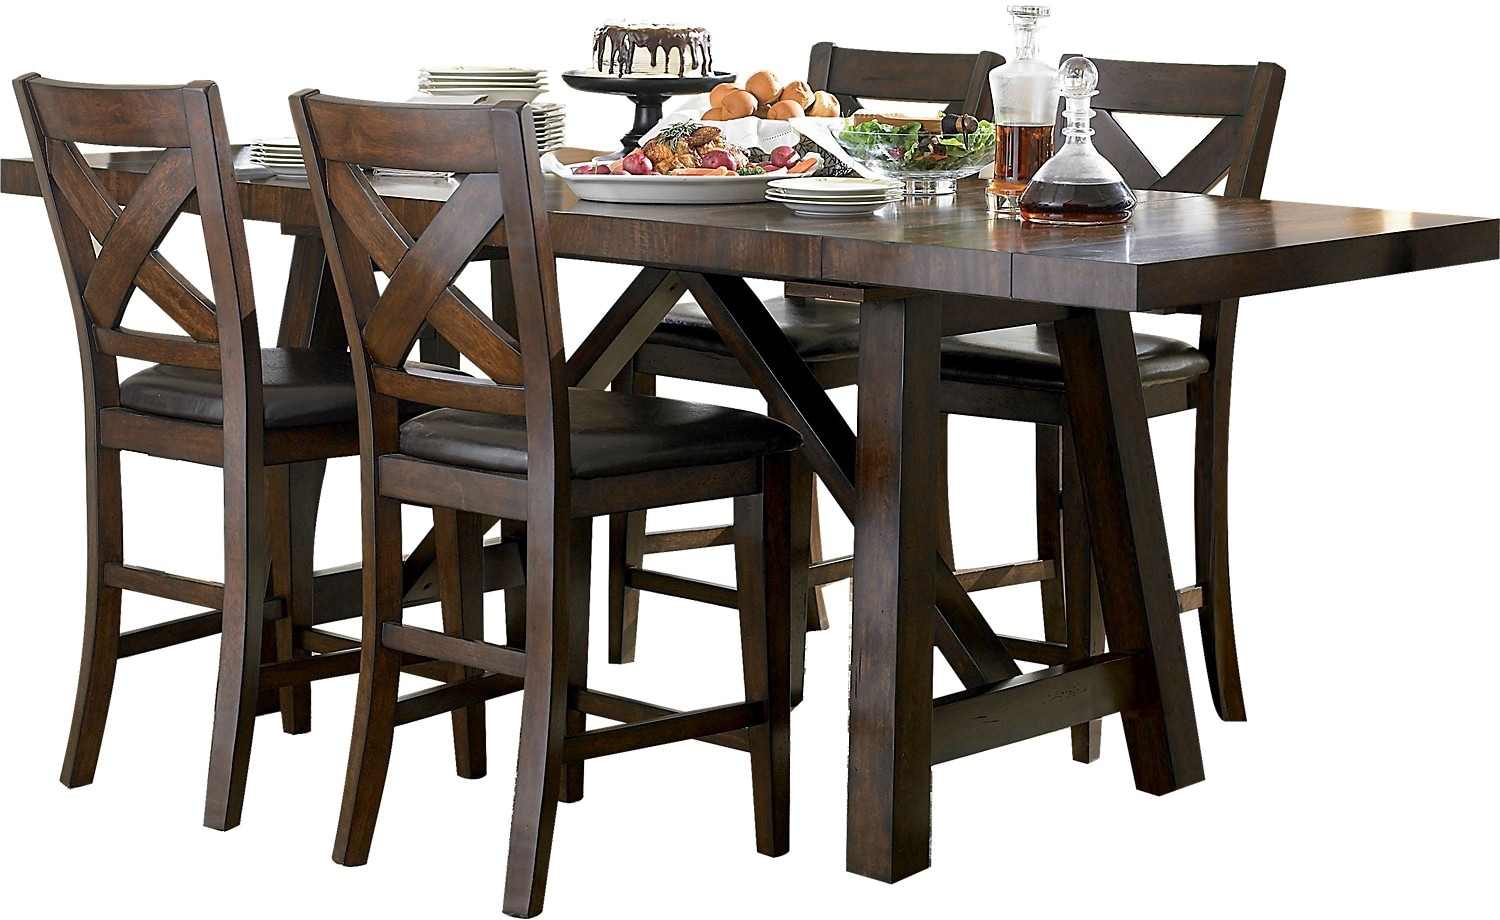 adara 5 piece counter height dining package rectangle table the brick. Black Bedroom Furniture Sets. Home Design Ideas